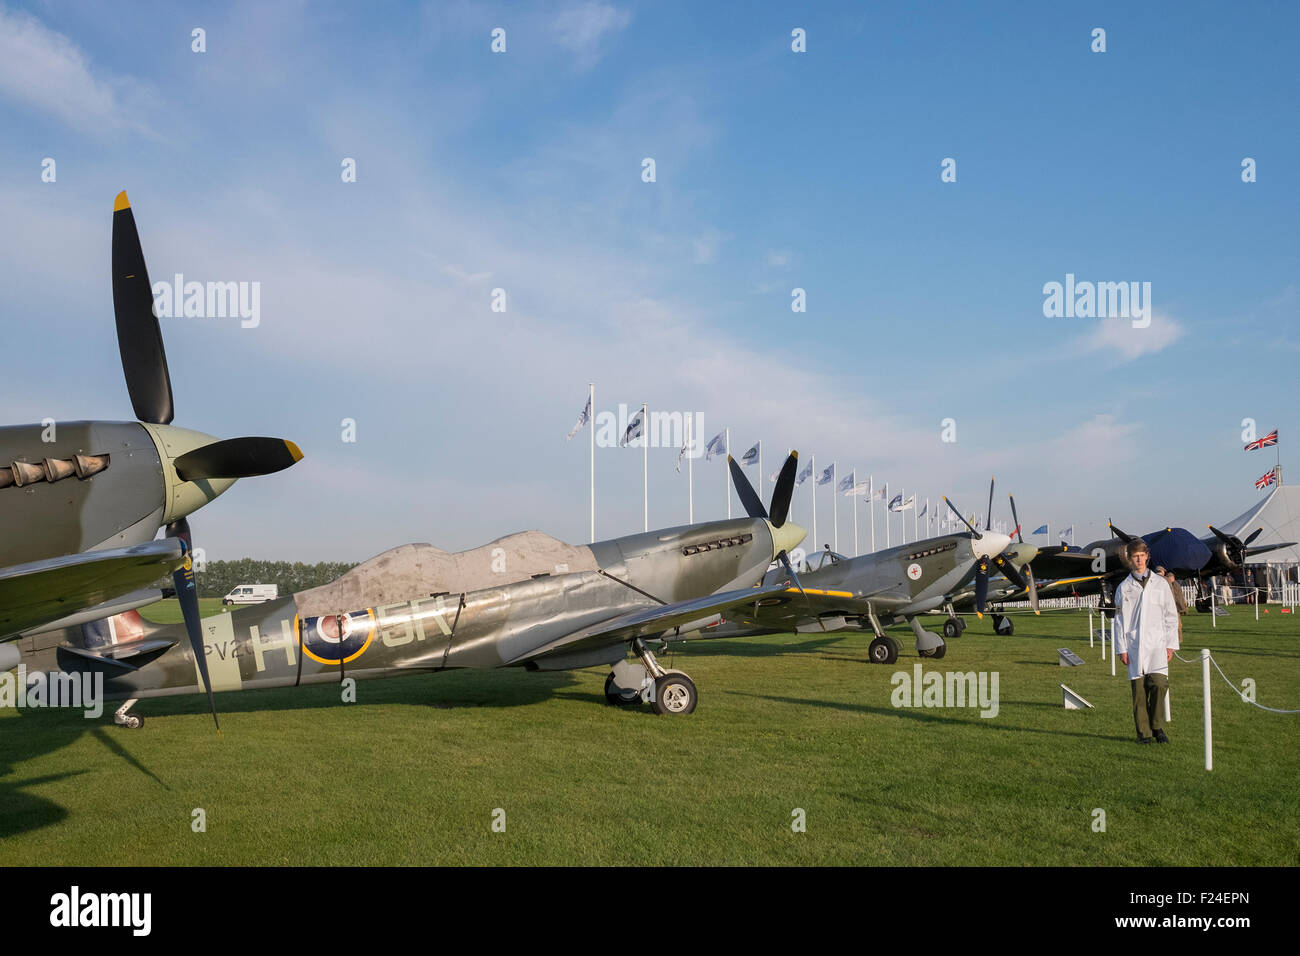 Goodwood, Chichester, West Sussex, UK. 11th September, 2015. Image showing row of spifire aircraft. image showing - Stock Image